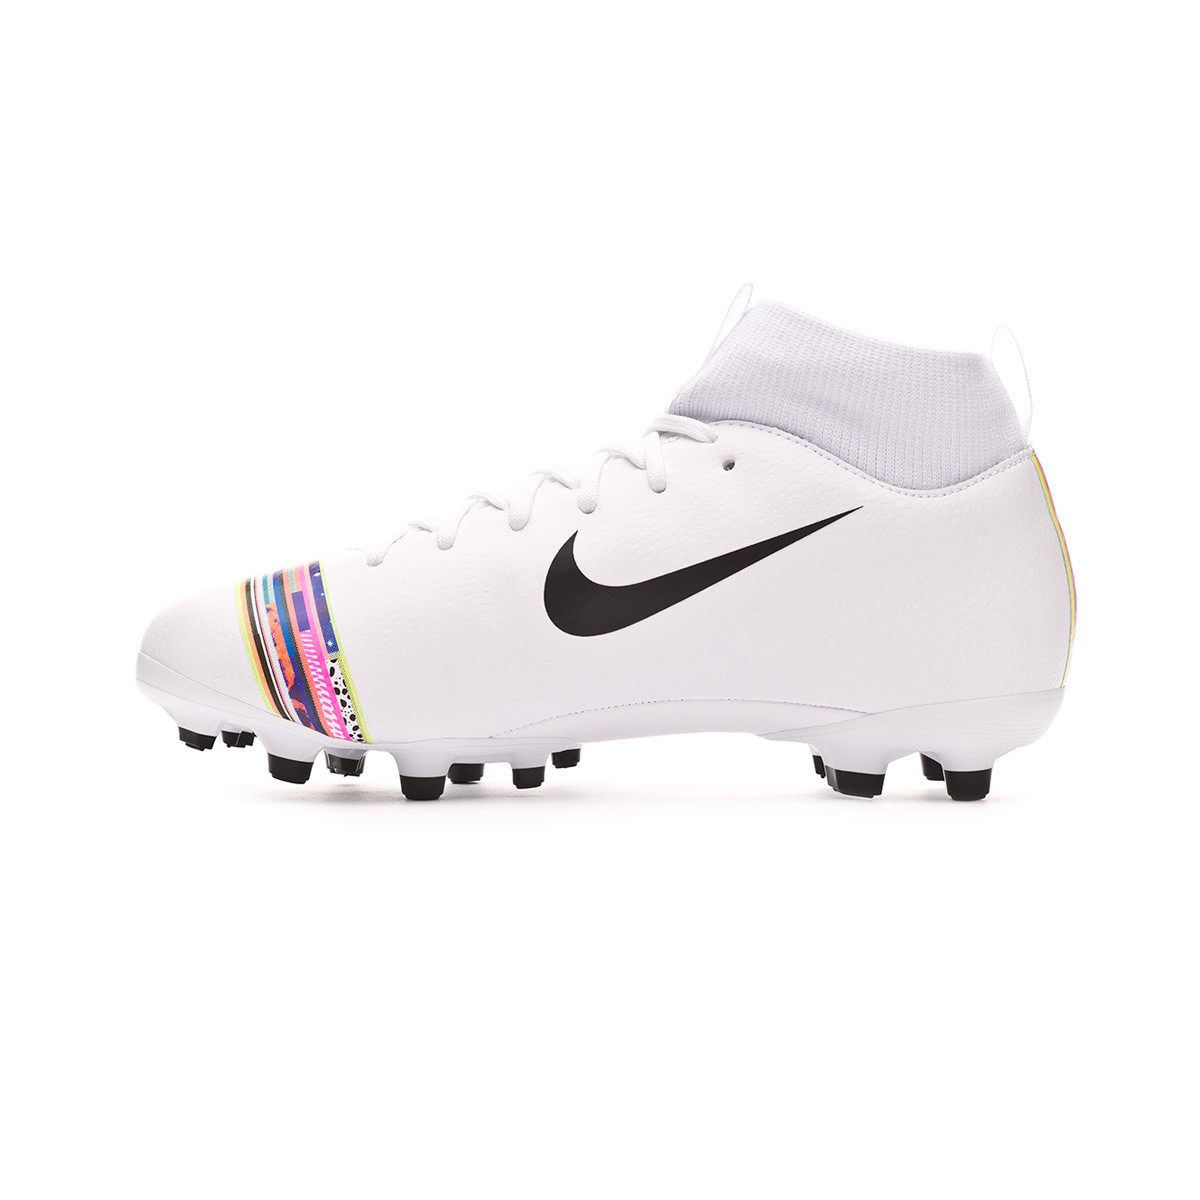 b22352f6d Football Boots Nike Kids Mercurial Superfly VI Academy LVL UP MG  White-Black-Pure platinum - Football store Fútbol Emotion